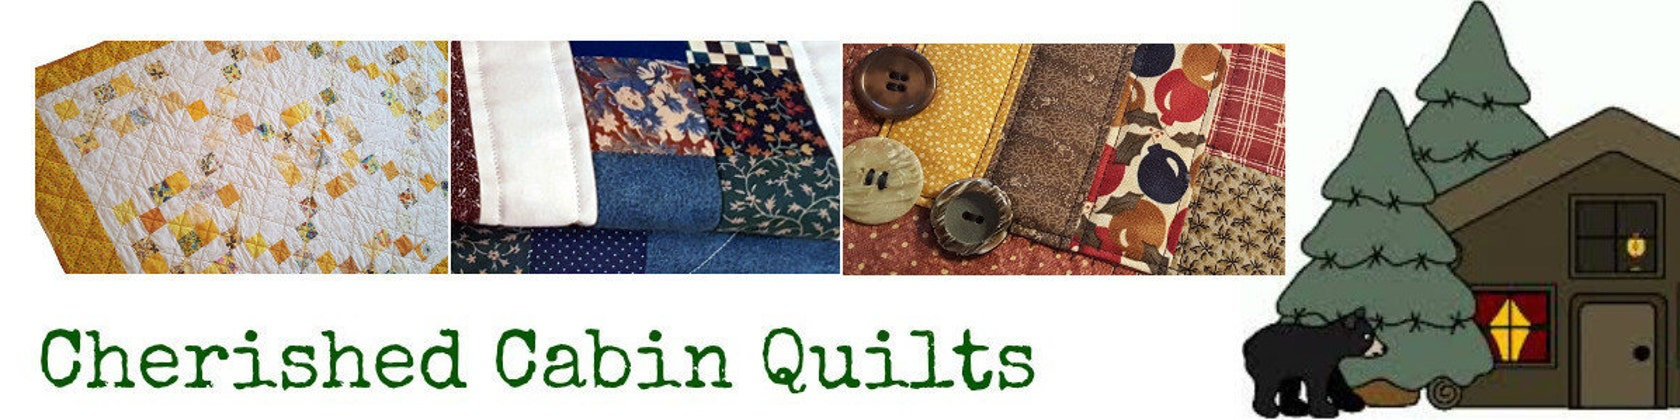 Cherished Cabin Quilts